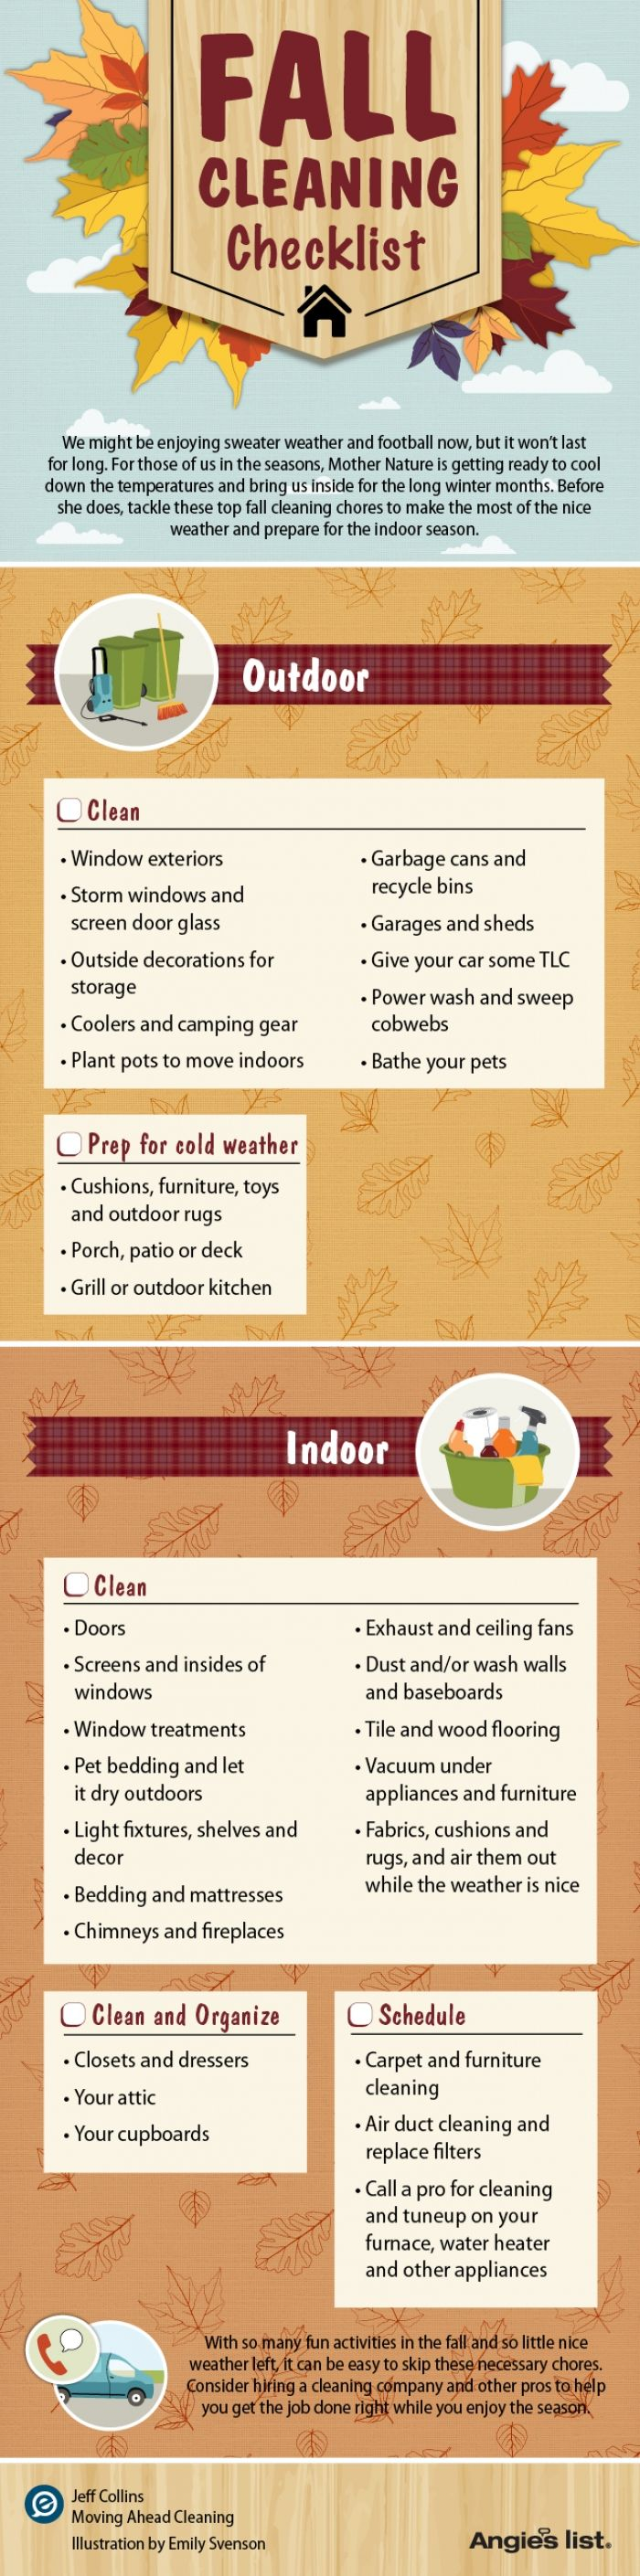 fall cleaning checklist!